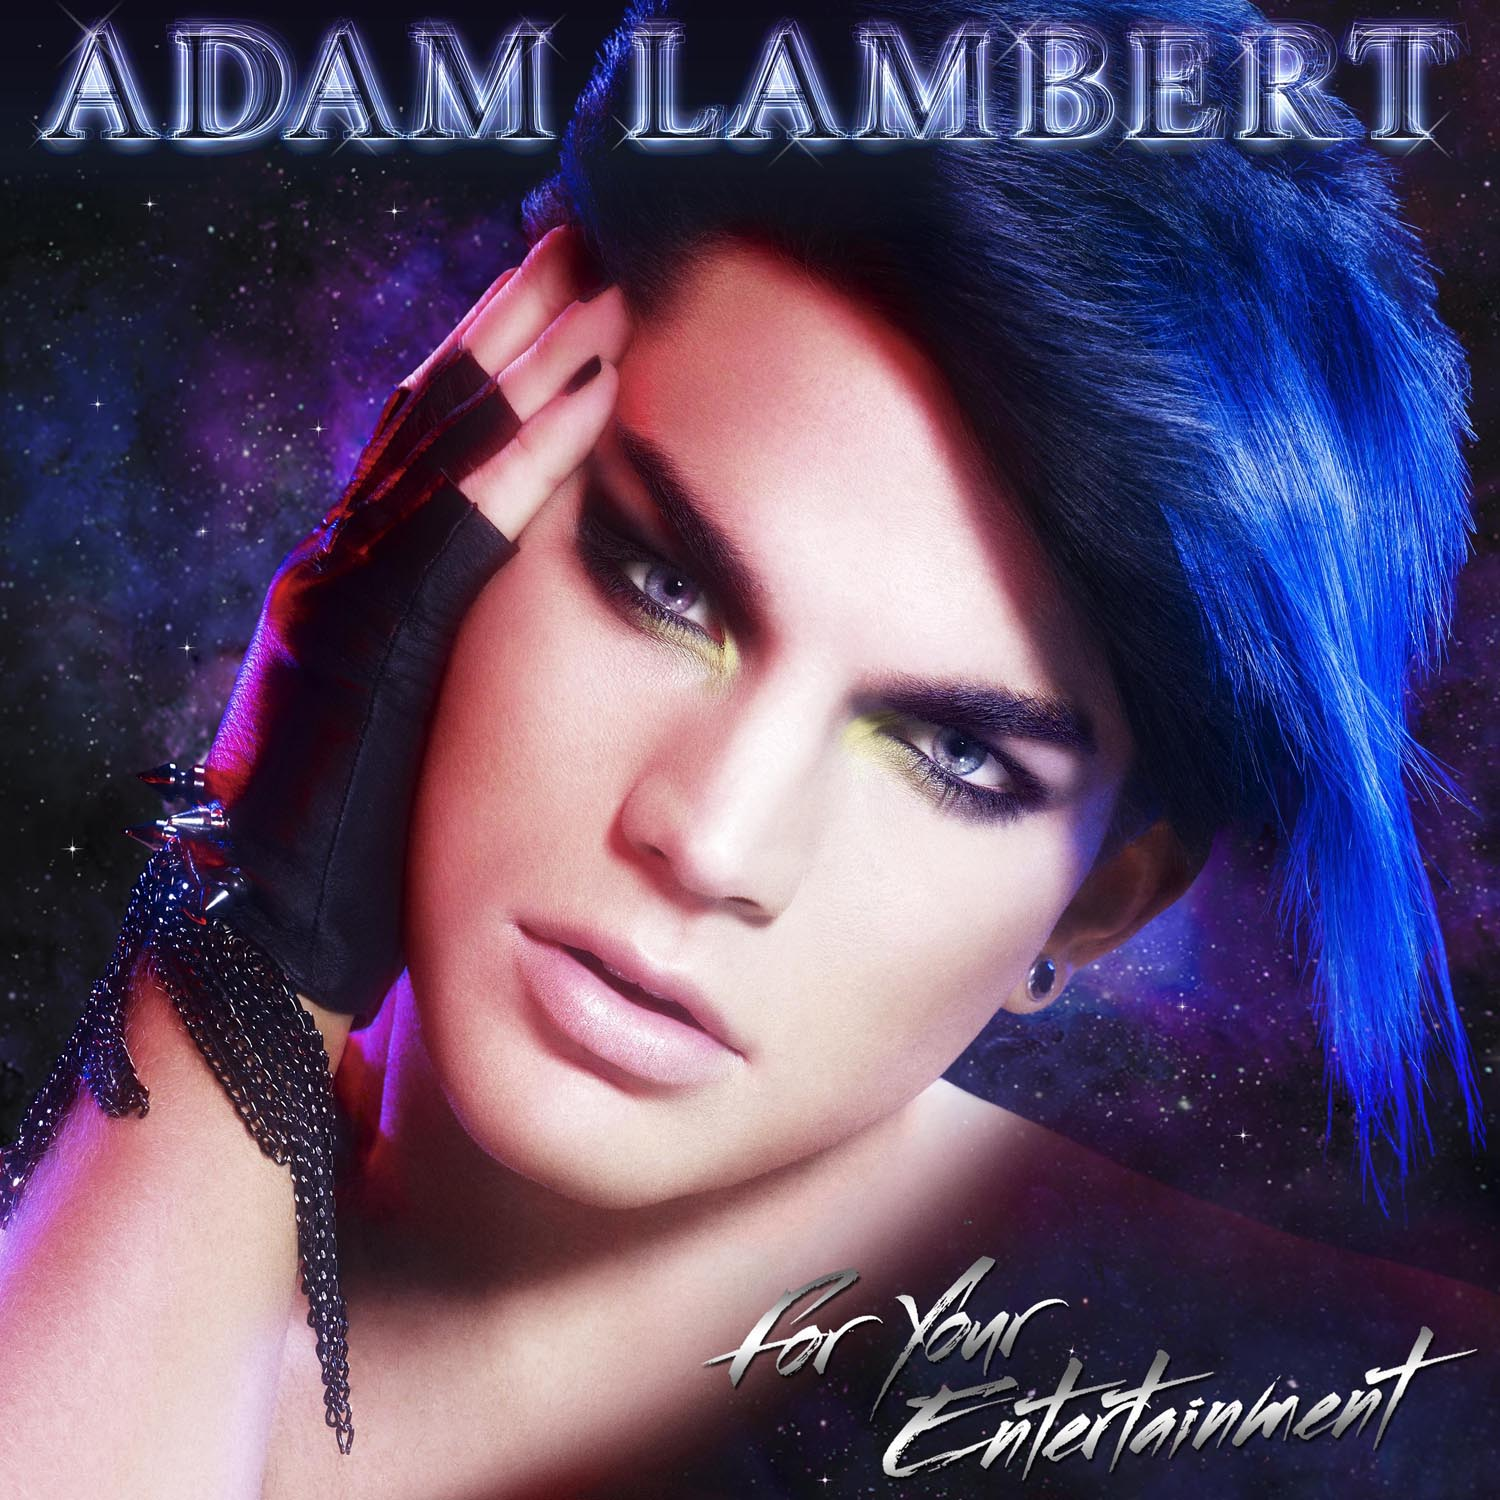 adam-lambert-for-your-entertainment-cover As usual, the focus of the ...